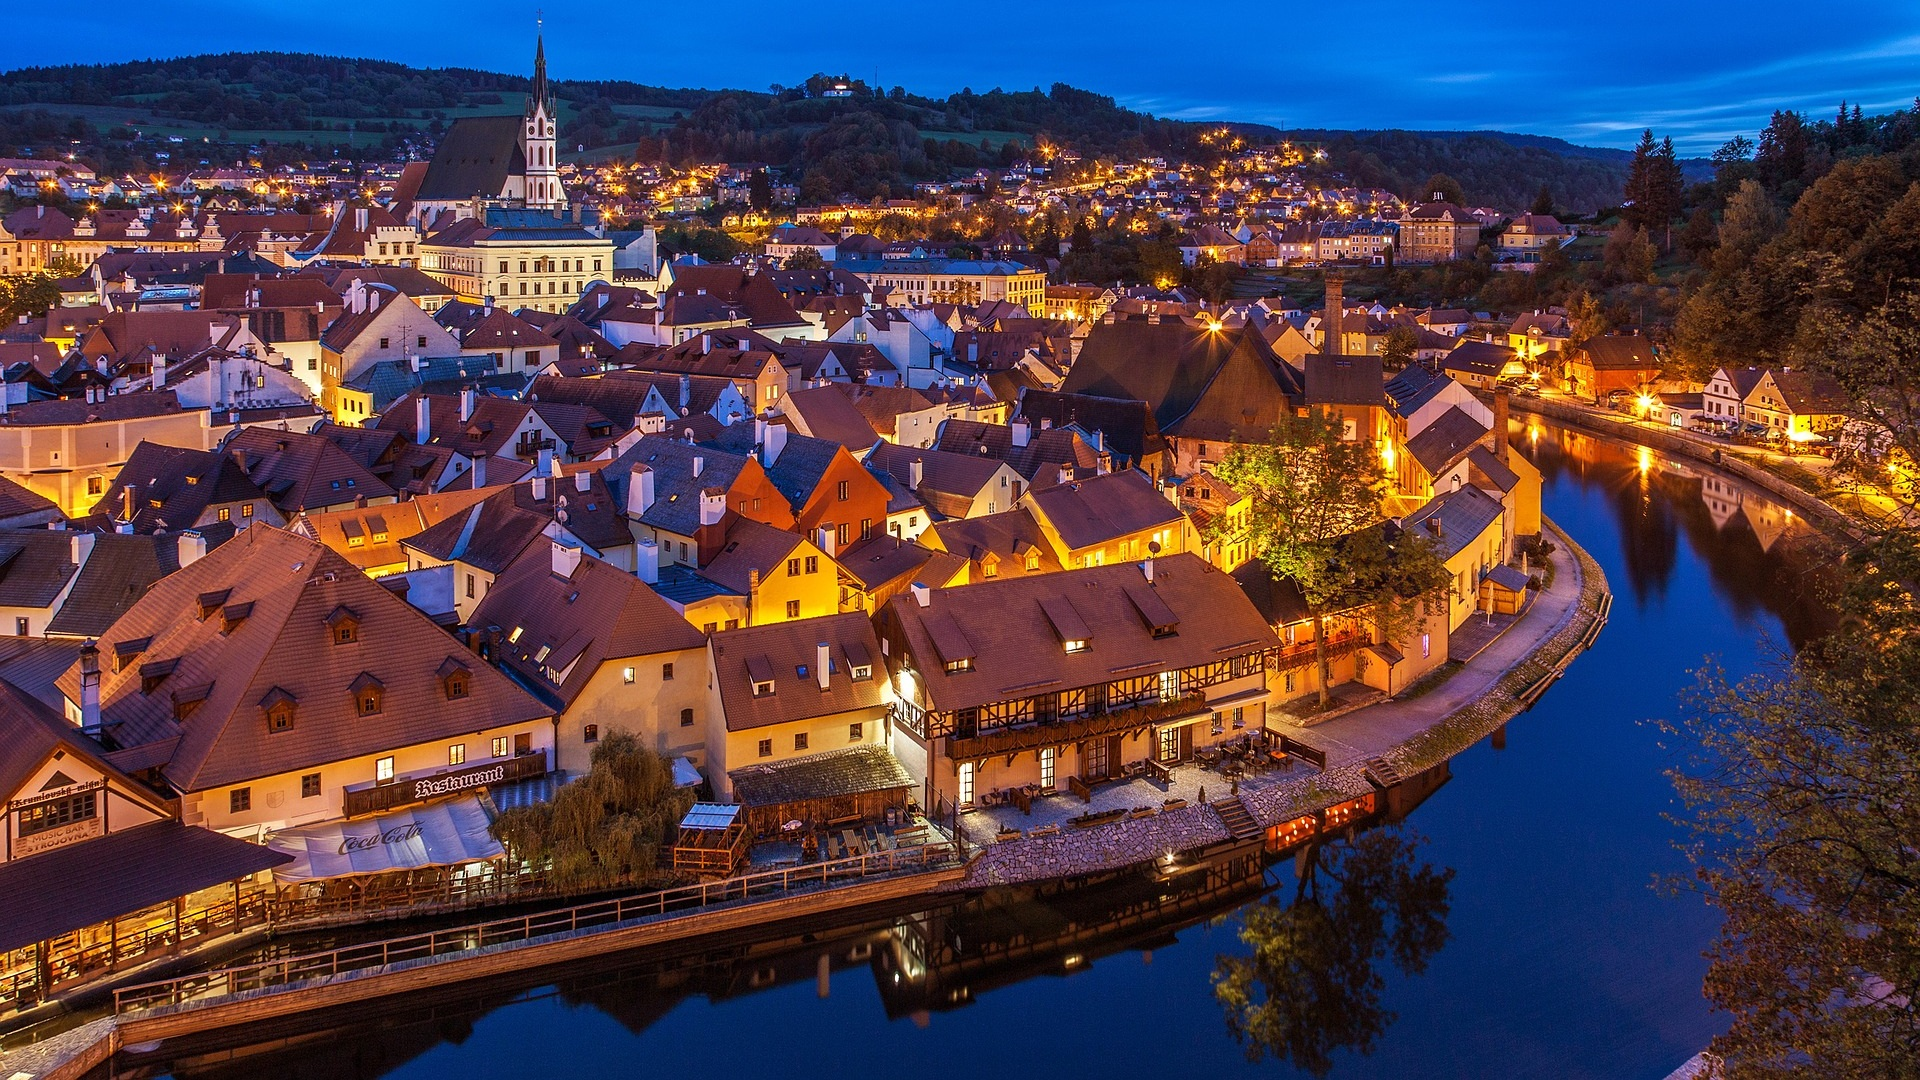 At night - Cesky Krumlov, Czech Republic